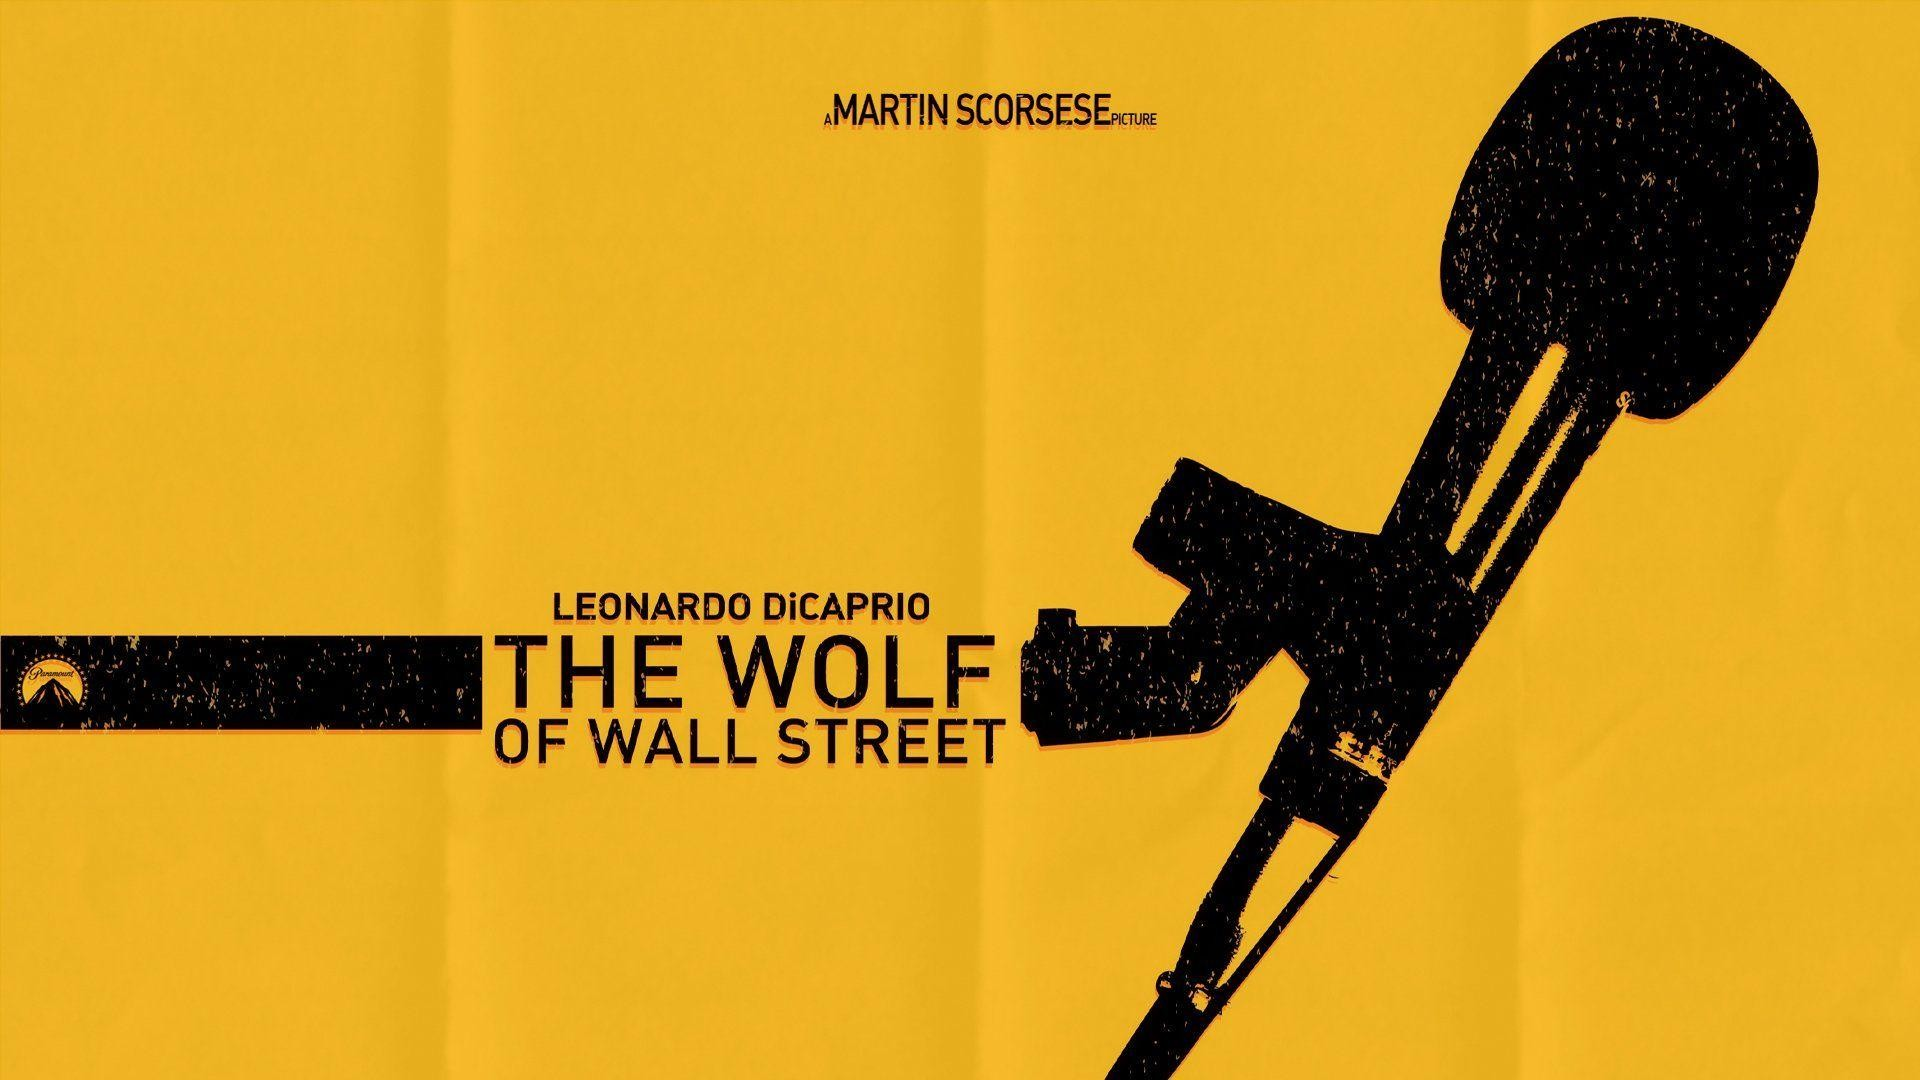 1920x1080 The wolf of wall street wallpaper | 0x0 | 516905 | WallpaperUP